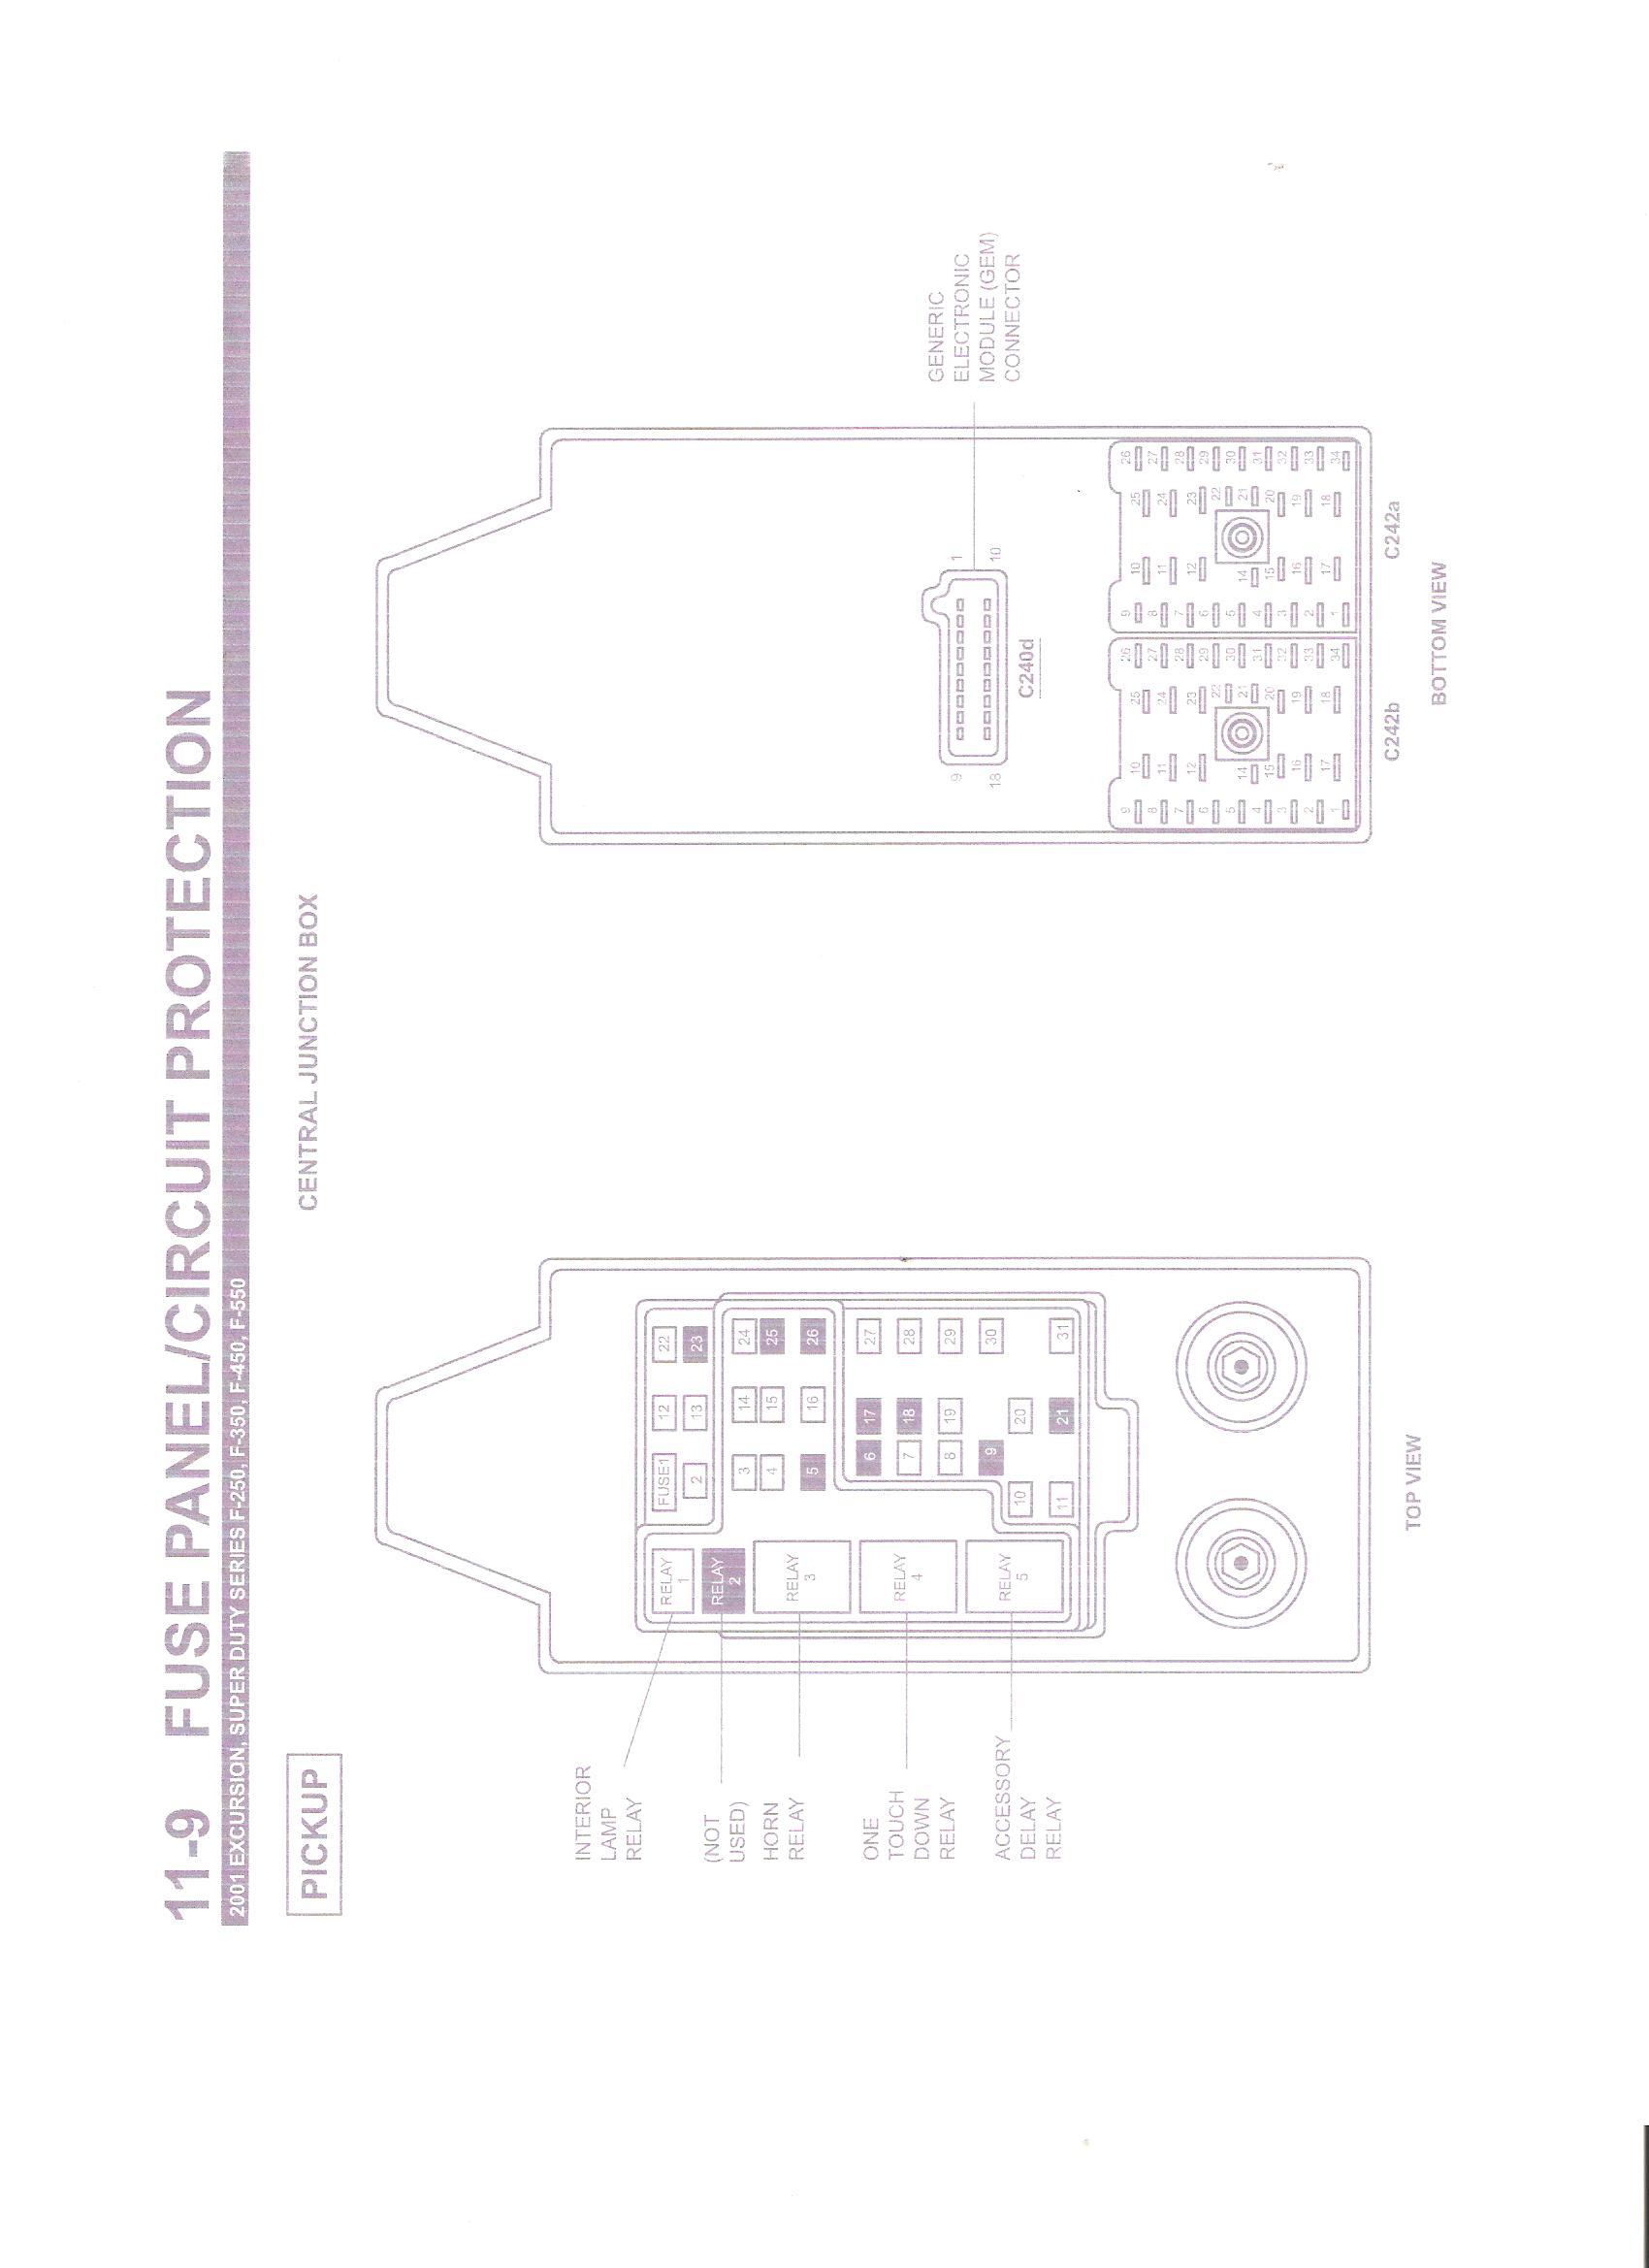 i need adrawing for a 2001 f350 fuse diagram i want to steve graphic graphic graphic